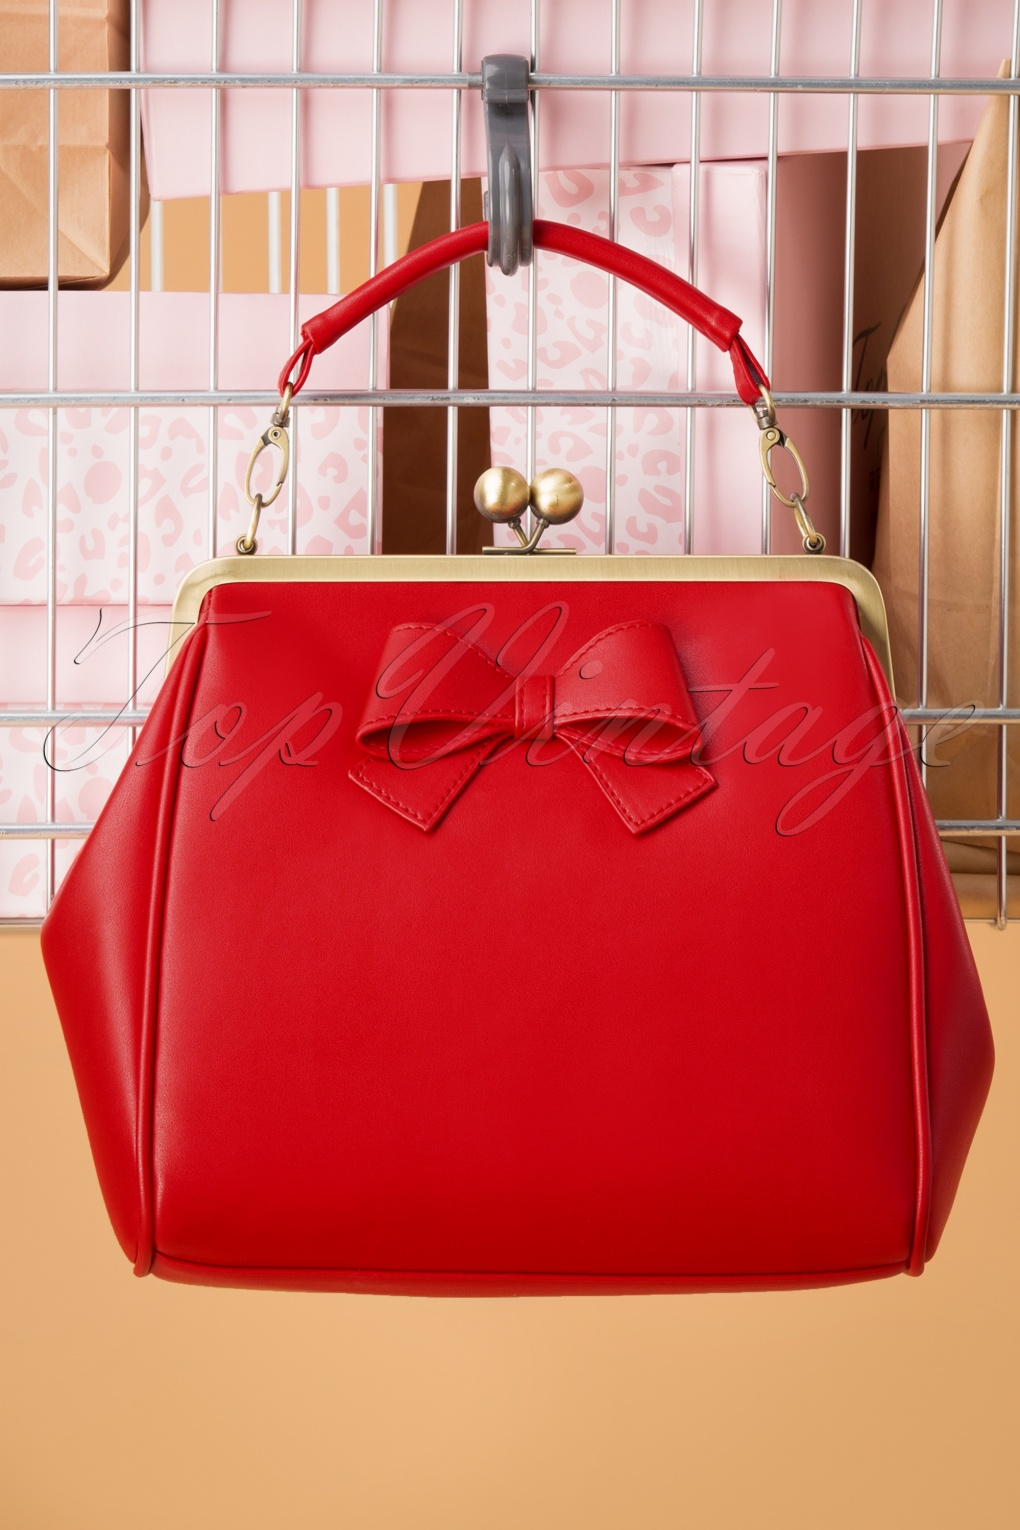 1950s Handbags, Purses, and Evening Bag Styles 50s Mindy What Is Love Handbag in Burned Red £37.55 AT vintagedancer.com